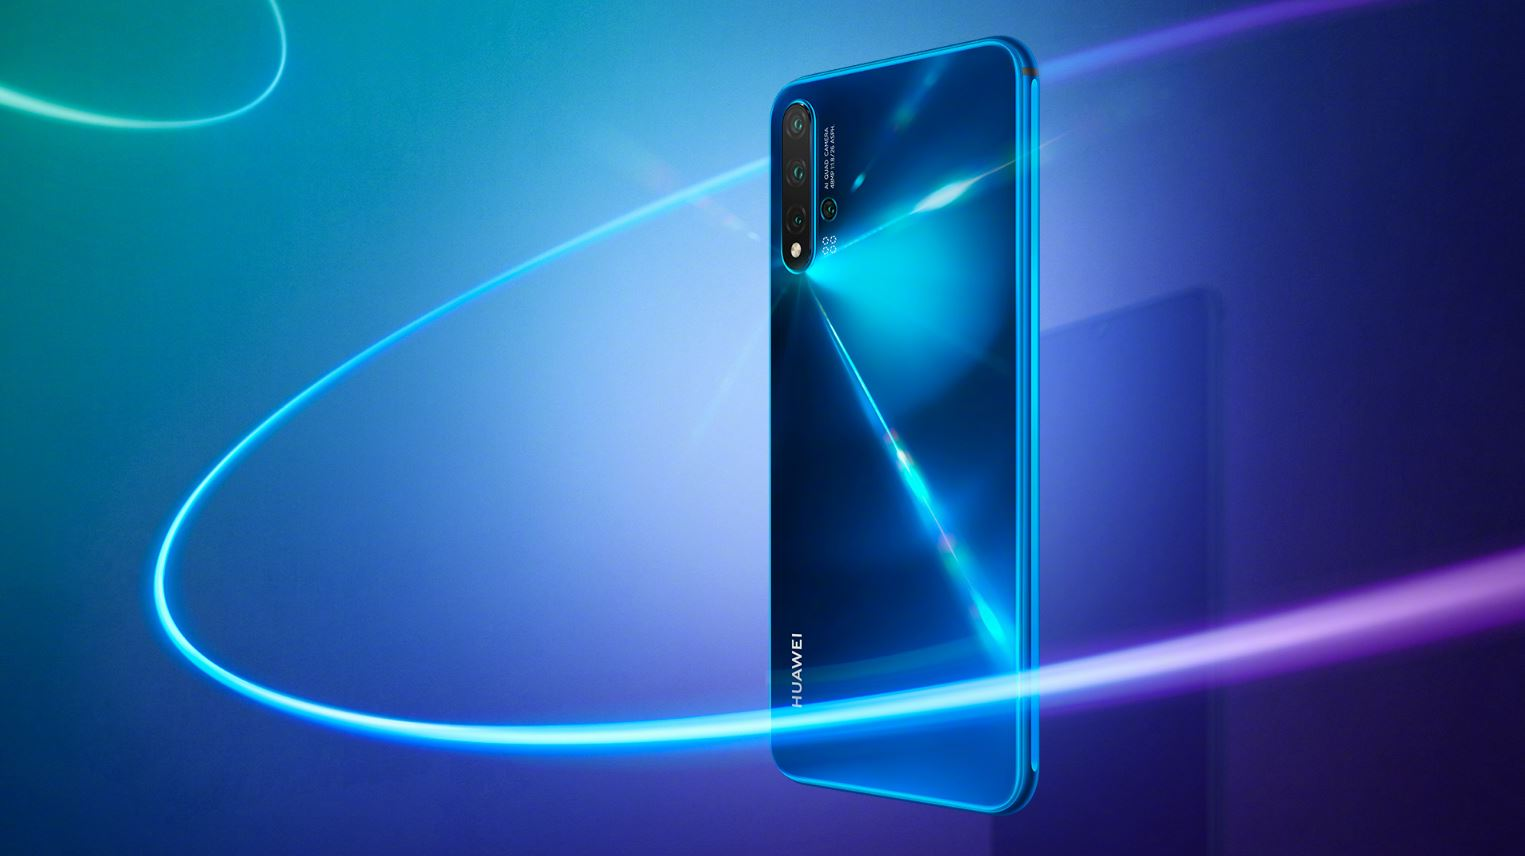 February 2021 security improvement released for Huawei Nova 5 Pro smartphone